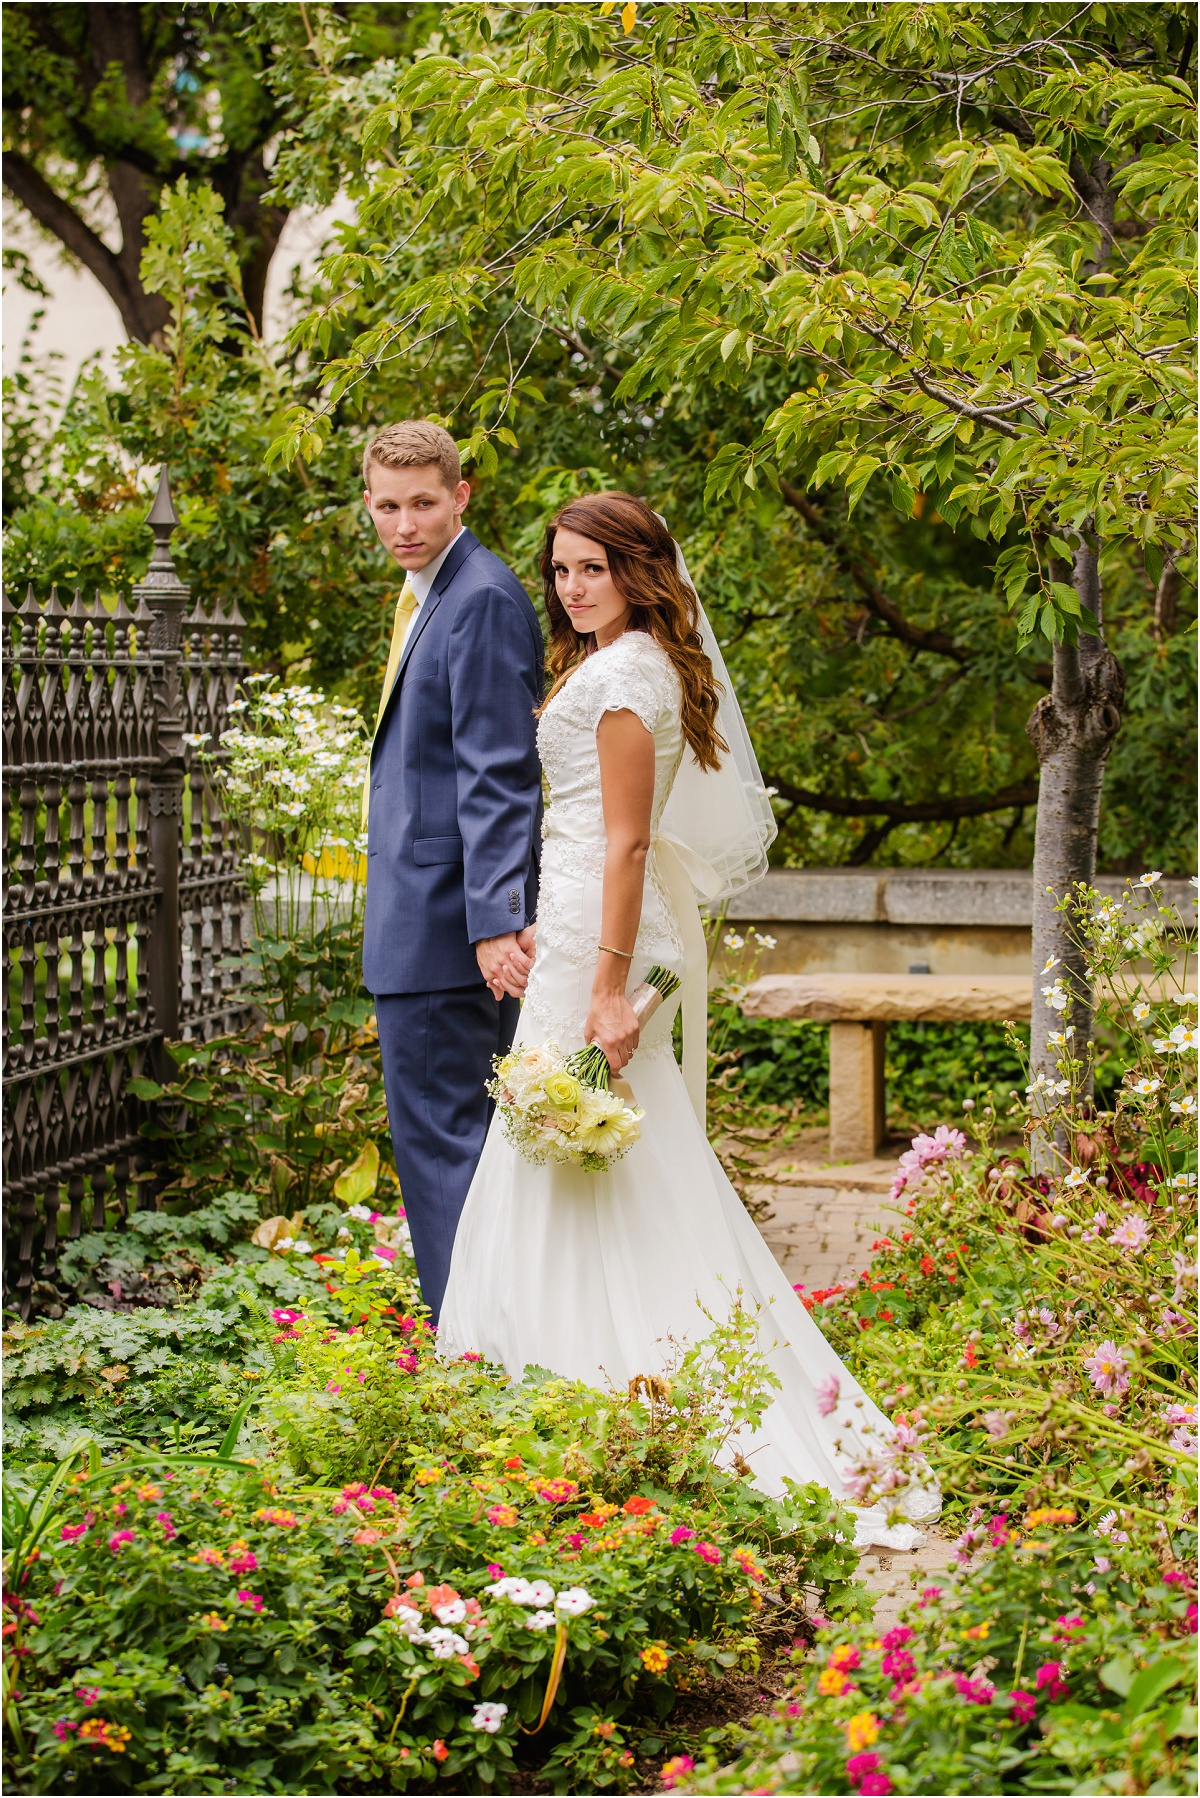 Heritage Gardens Salt Lake City Temple Utah Wedding Terra Cooper Photography_4803.jpg